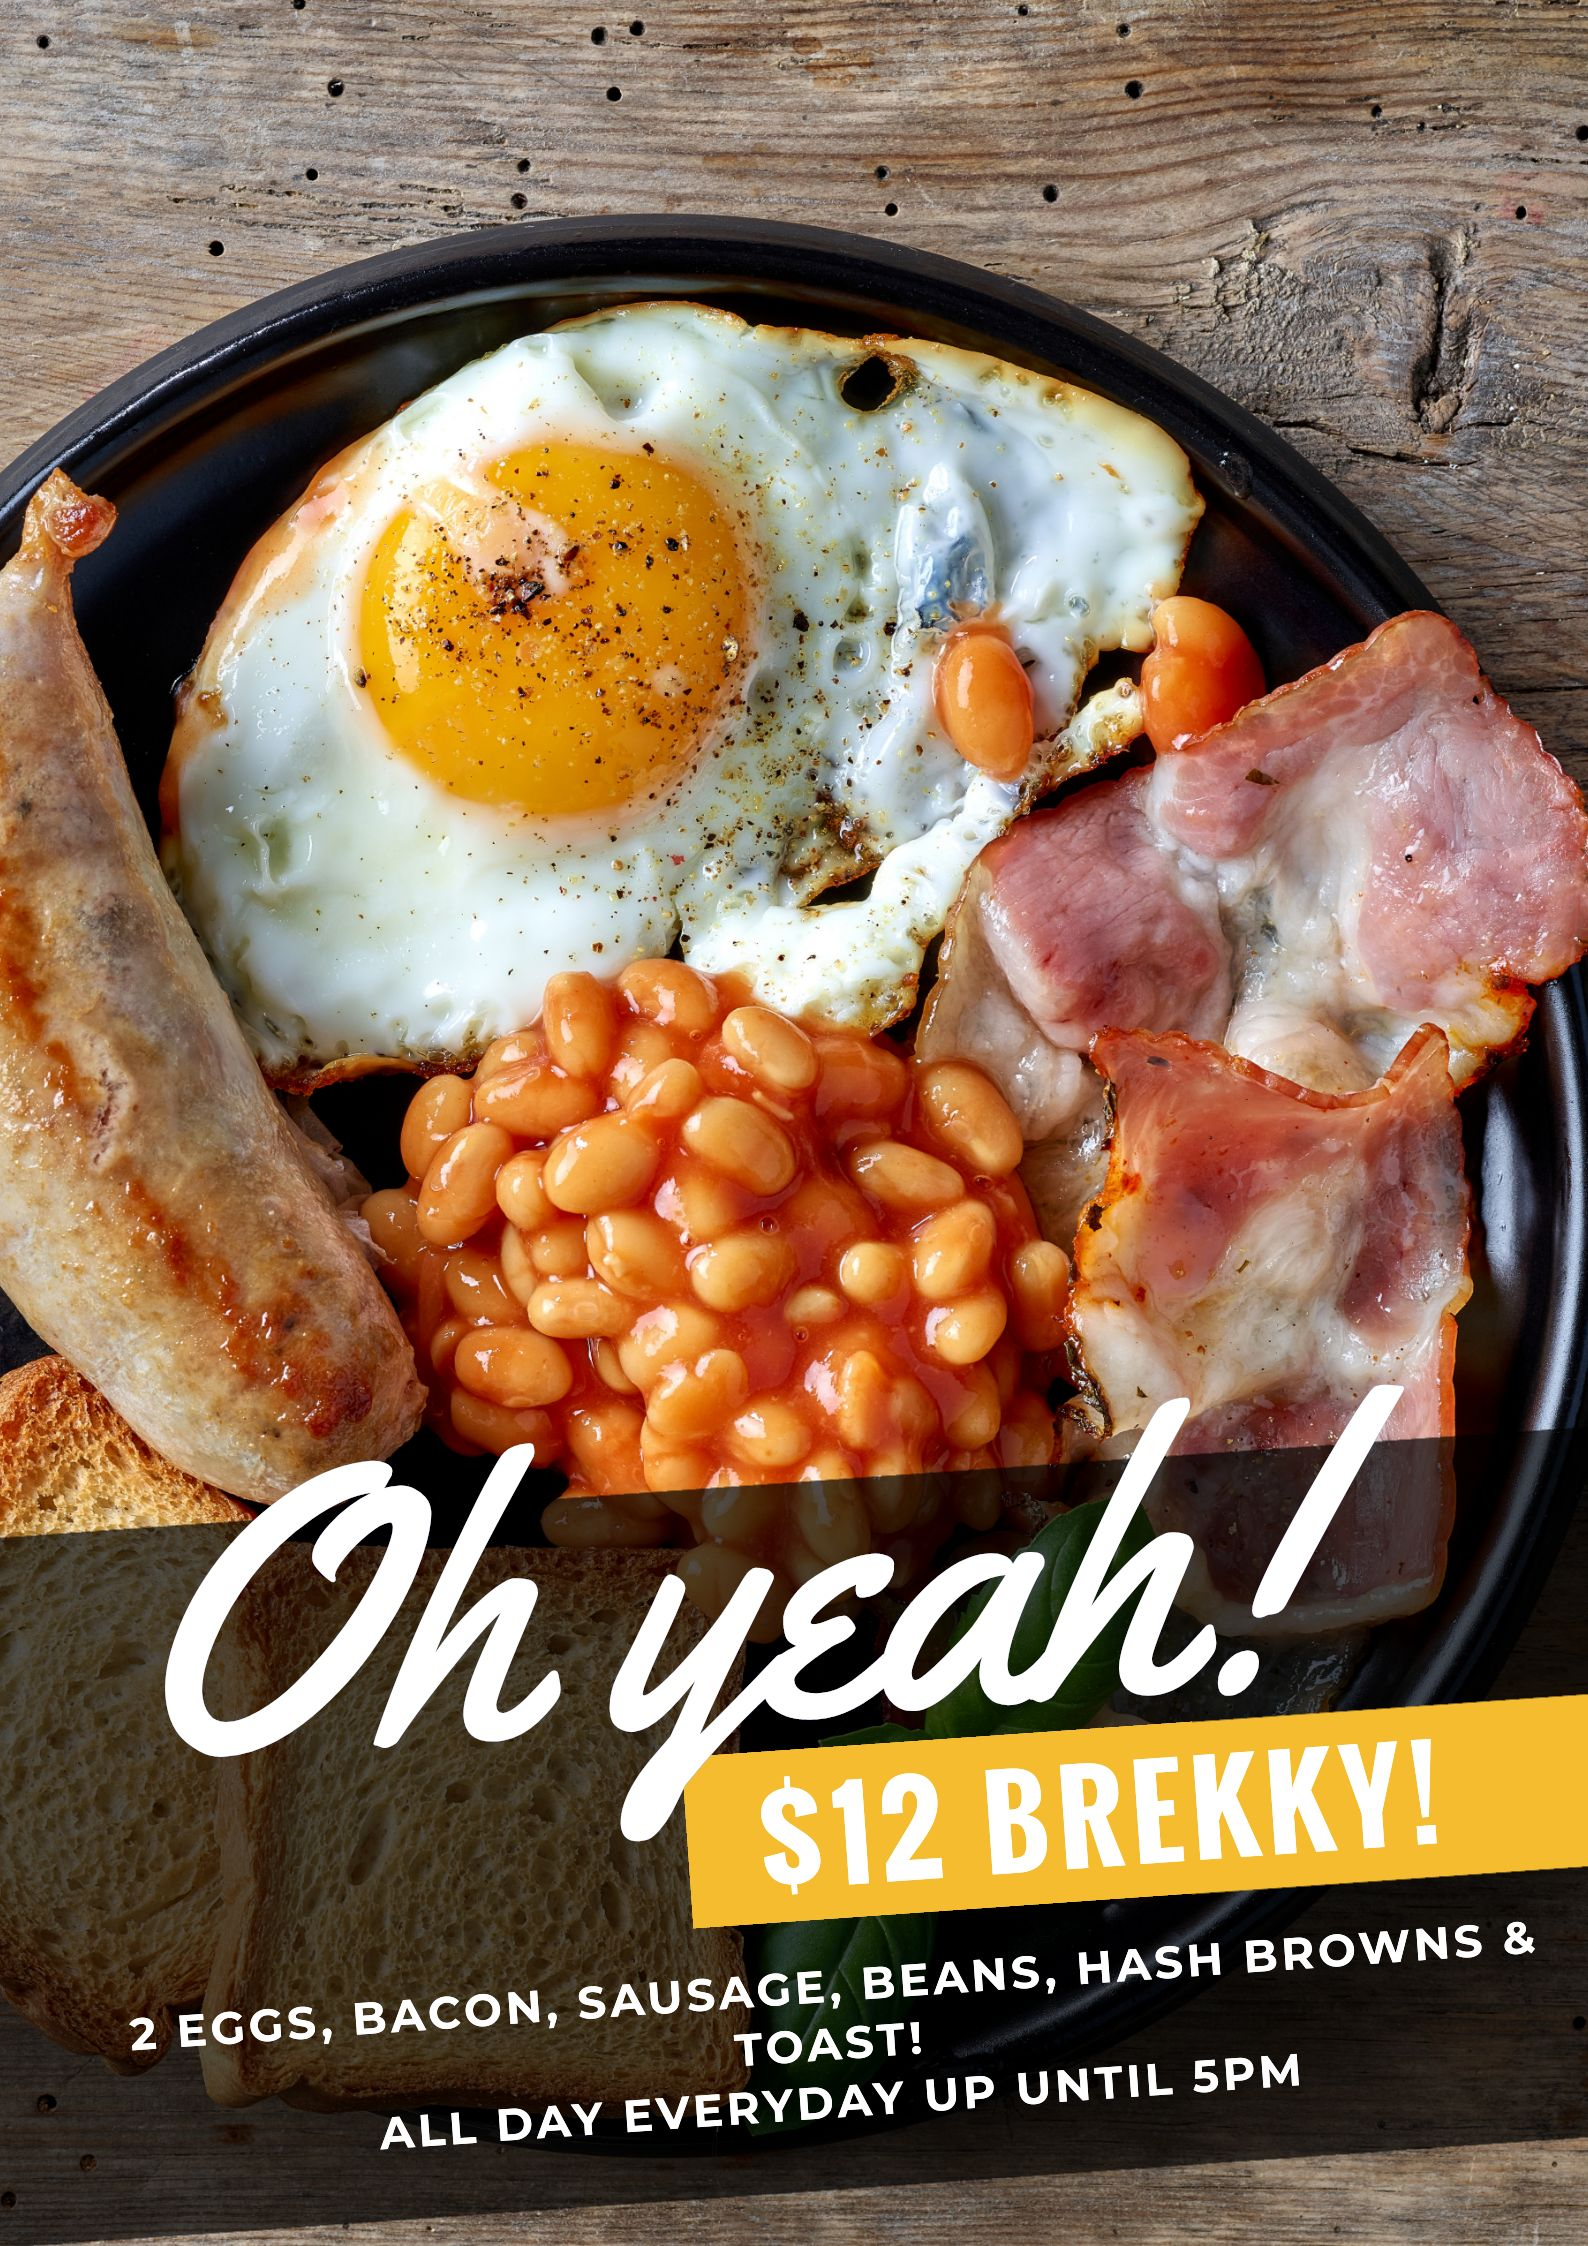 $5-Breakfast-Special-Meal-Deal-Poster-Template-poster (1)